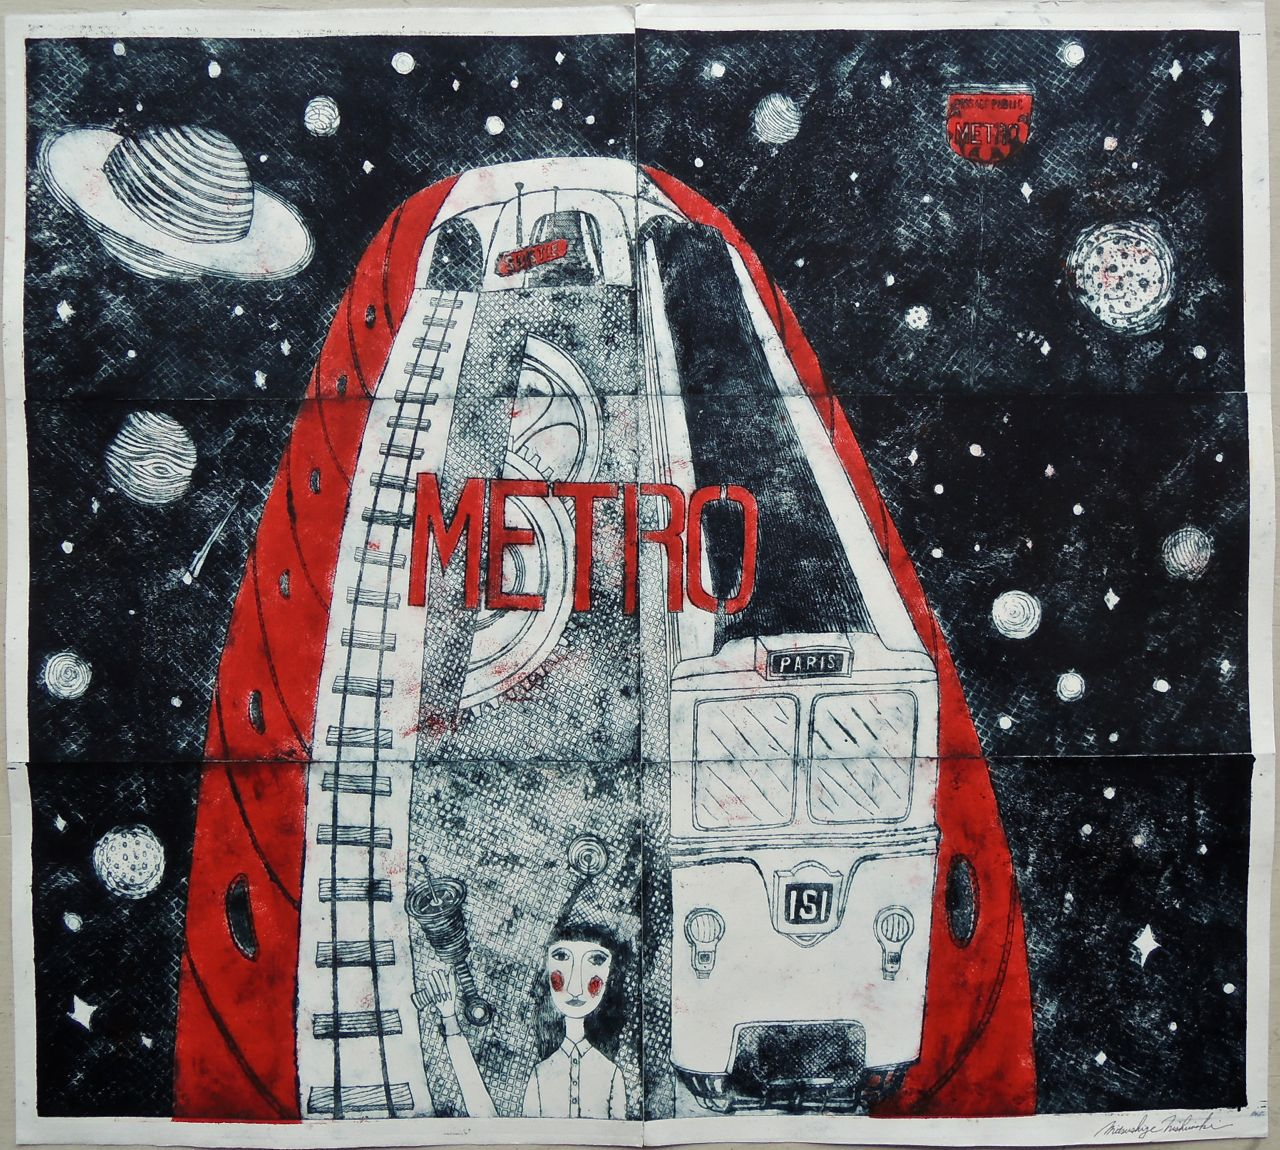 "Artist: Mitsushige Nishiwaki  Name: Metro  Size: 34""x30.5""  Price:  Inquire   Method: etching  Condition: signed print"